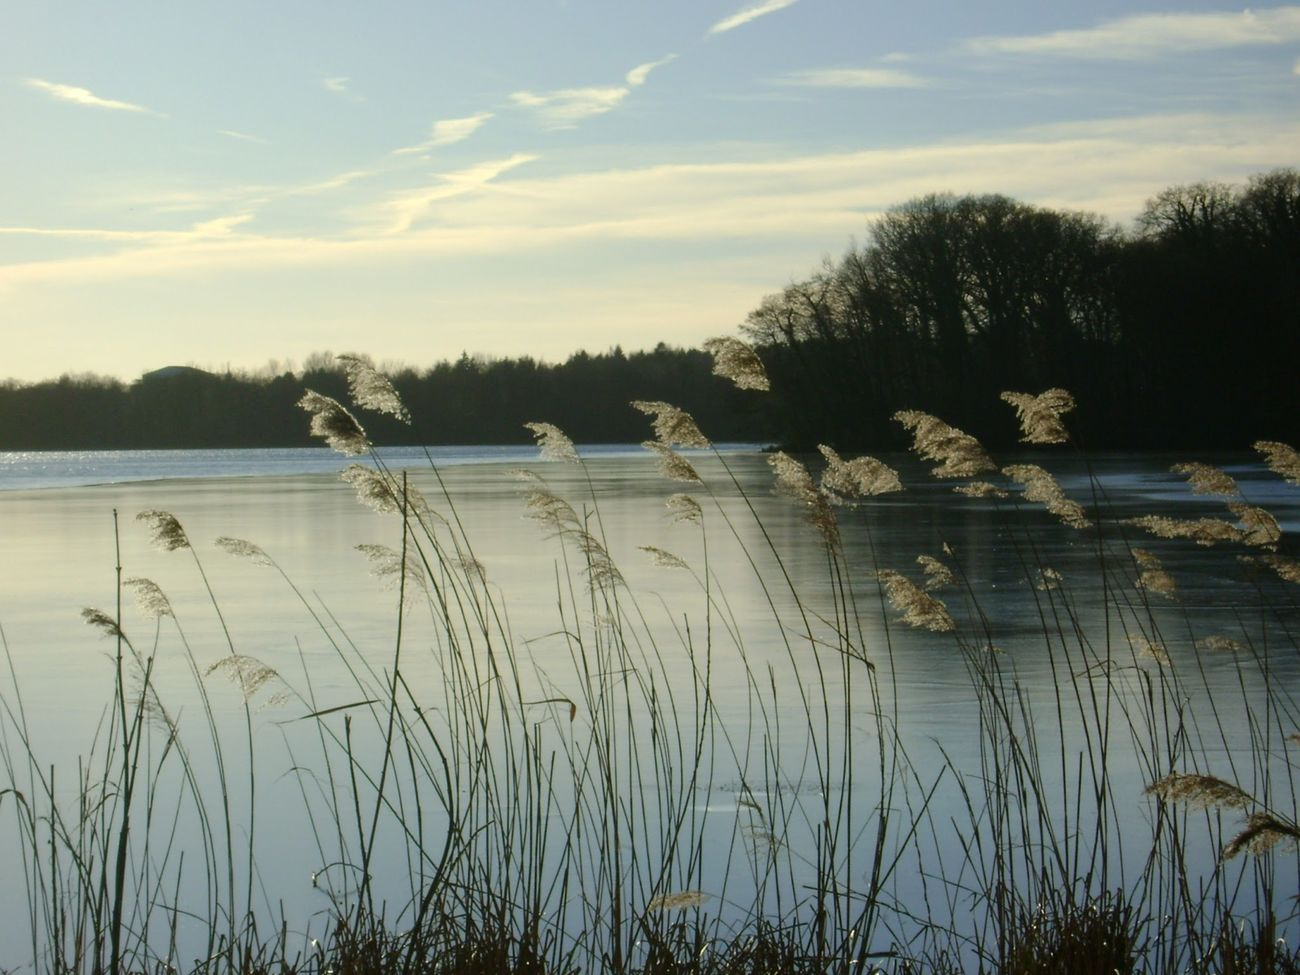 calm winterday Beauty In Nature Calm Cloud Cloud - Sky Day Grass Growth Lake Lakeshore Nature Outdoors Plant Sky Standing Water Water Welcome Weekly